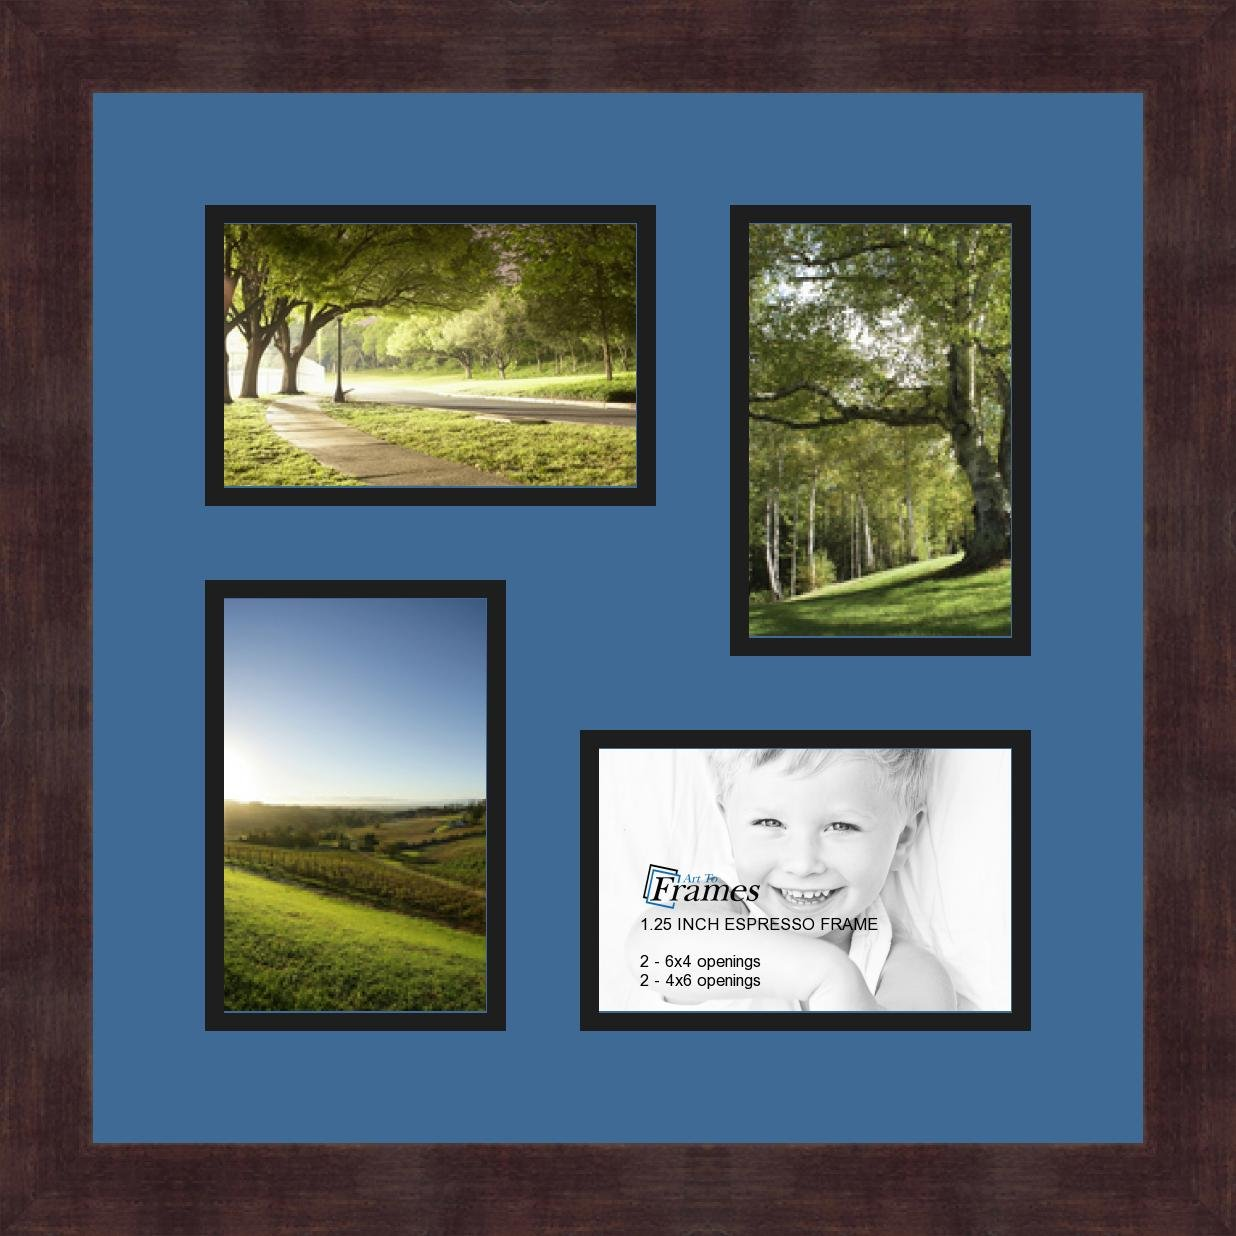 Art to Frames Double-Multimat-178-817//89-FRBW26061 Collage Frame Photo Mat Double Mat with 4-4x6 Openings and Espresso Frame